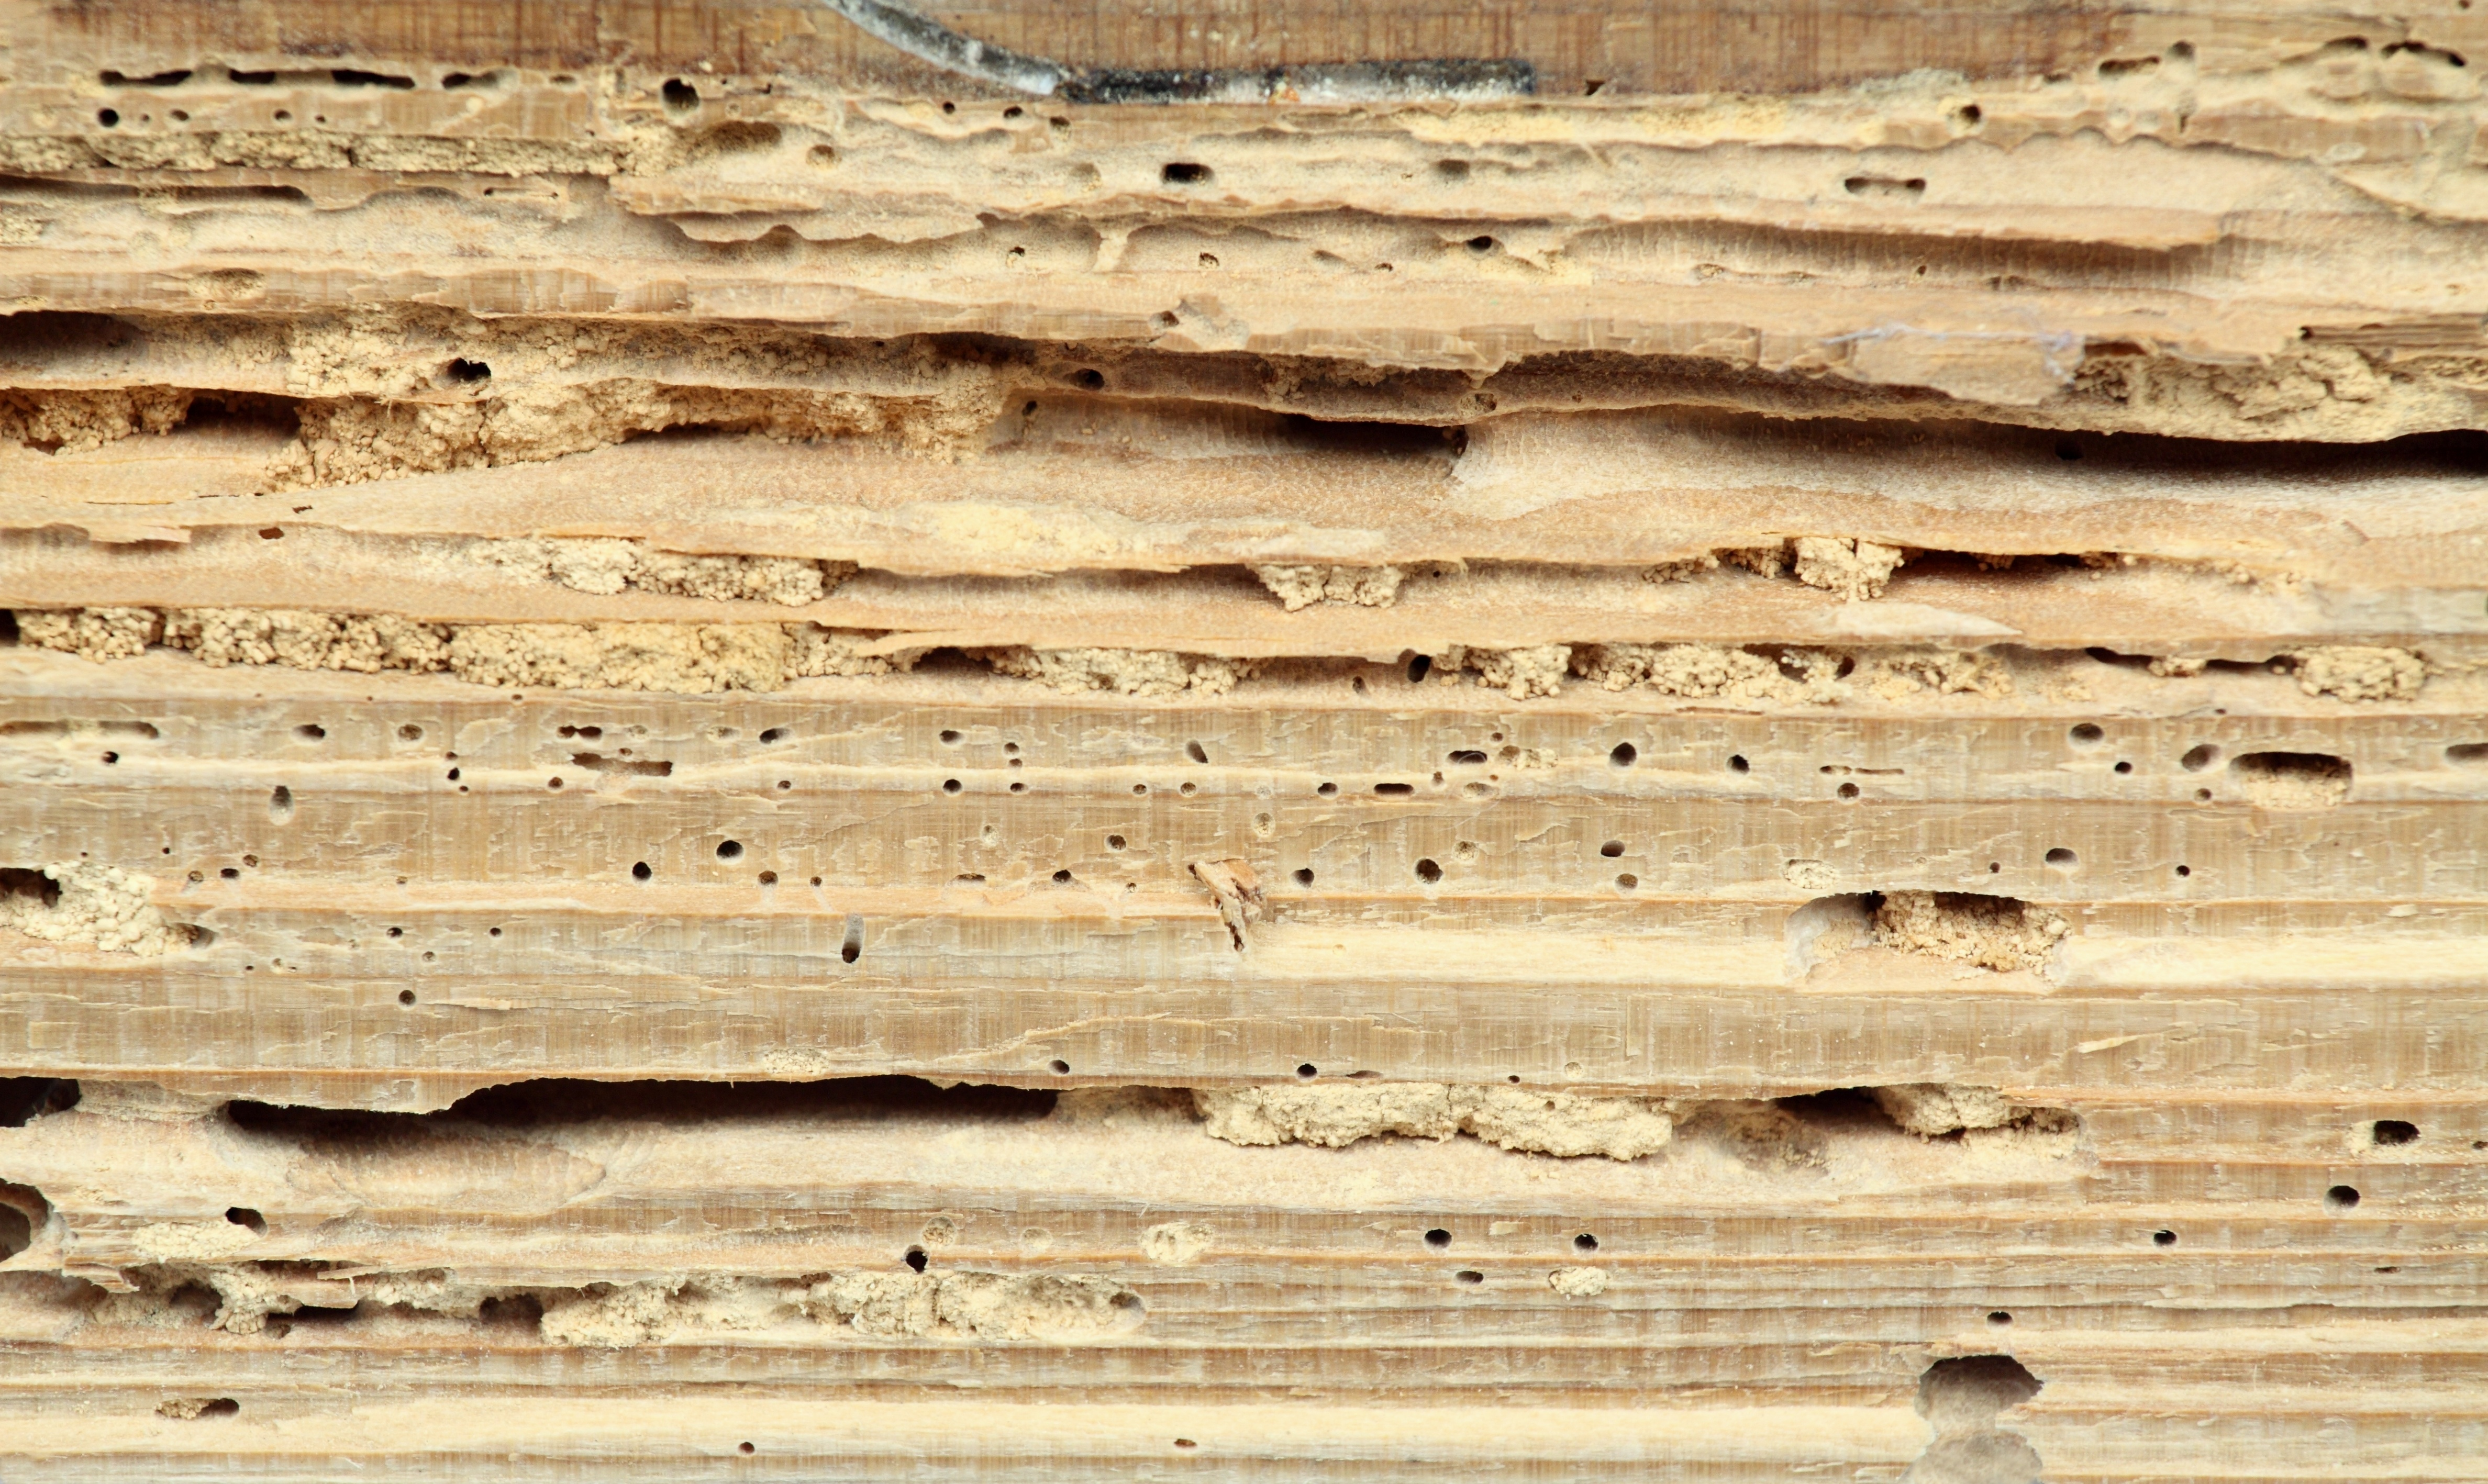 Very Impressive portraiture of wood destroying insects that nest underground and seek sources of wood  with #A58026 color and 4752x2835 pixels